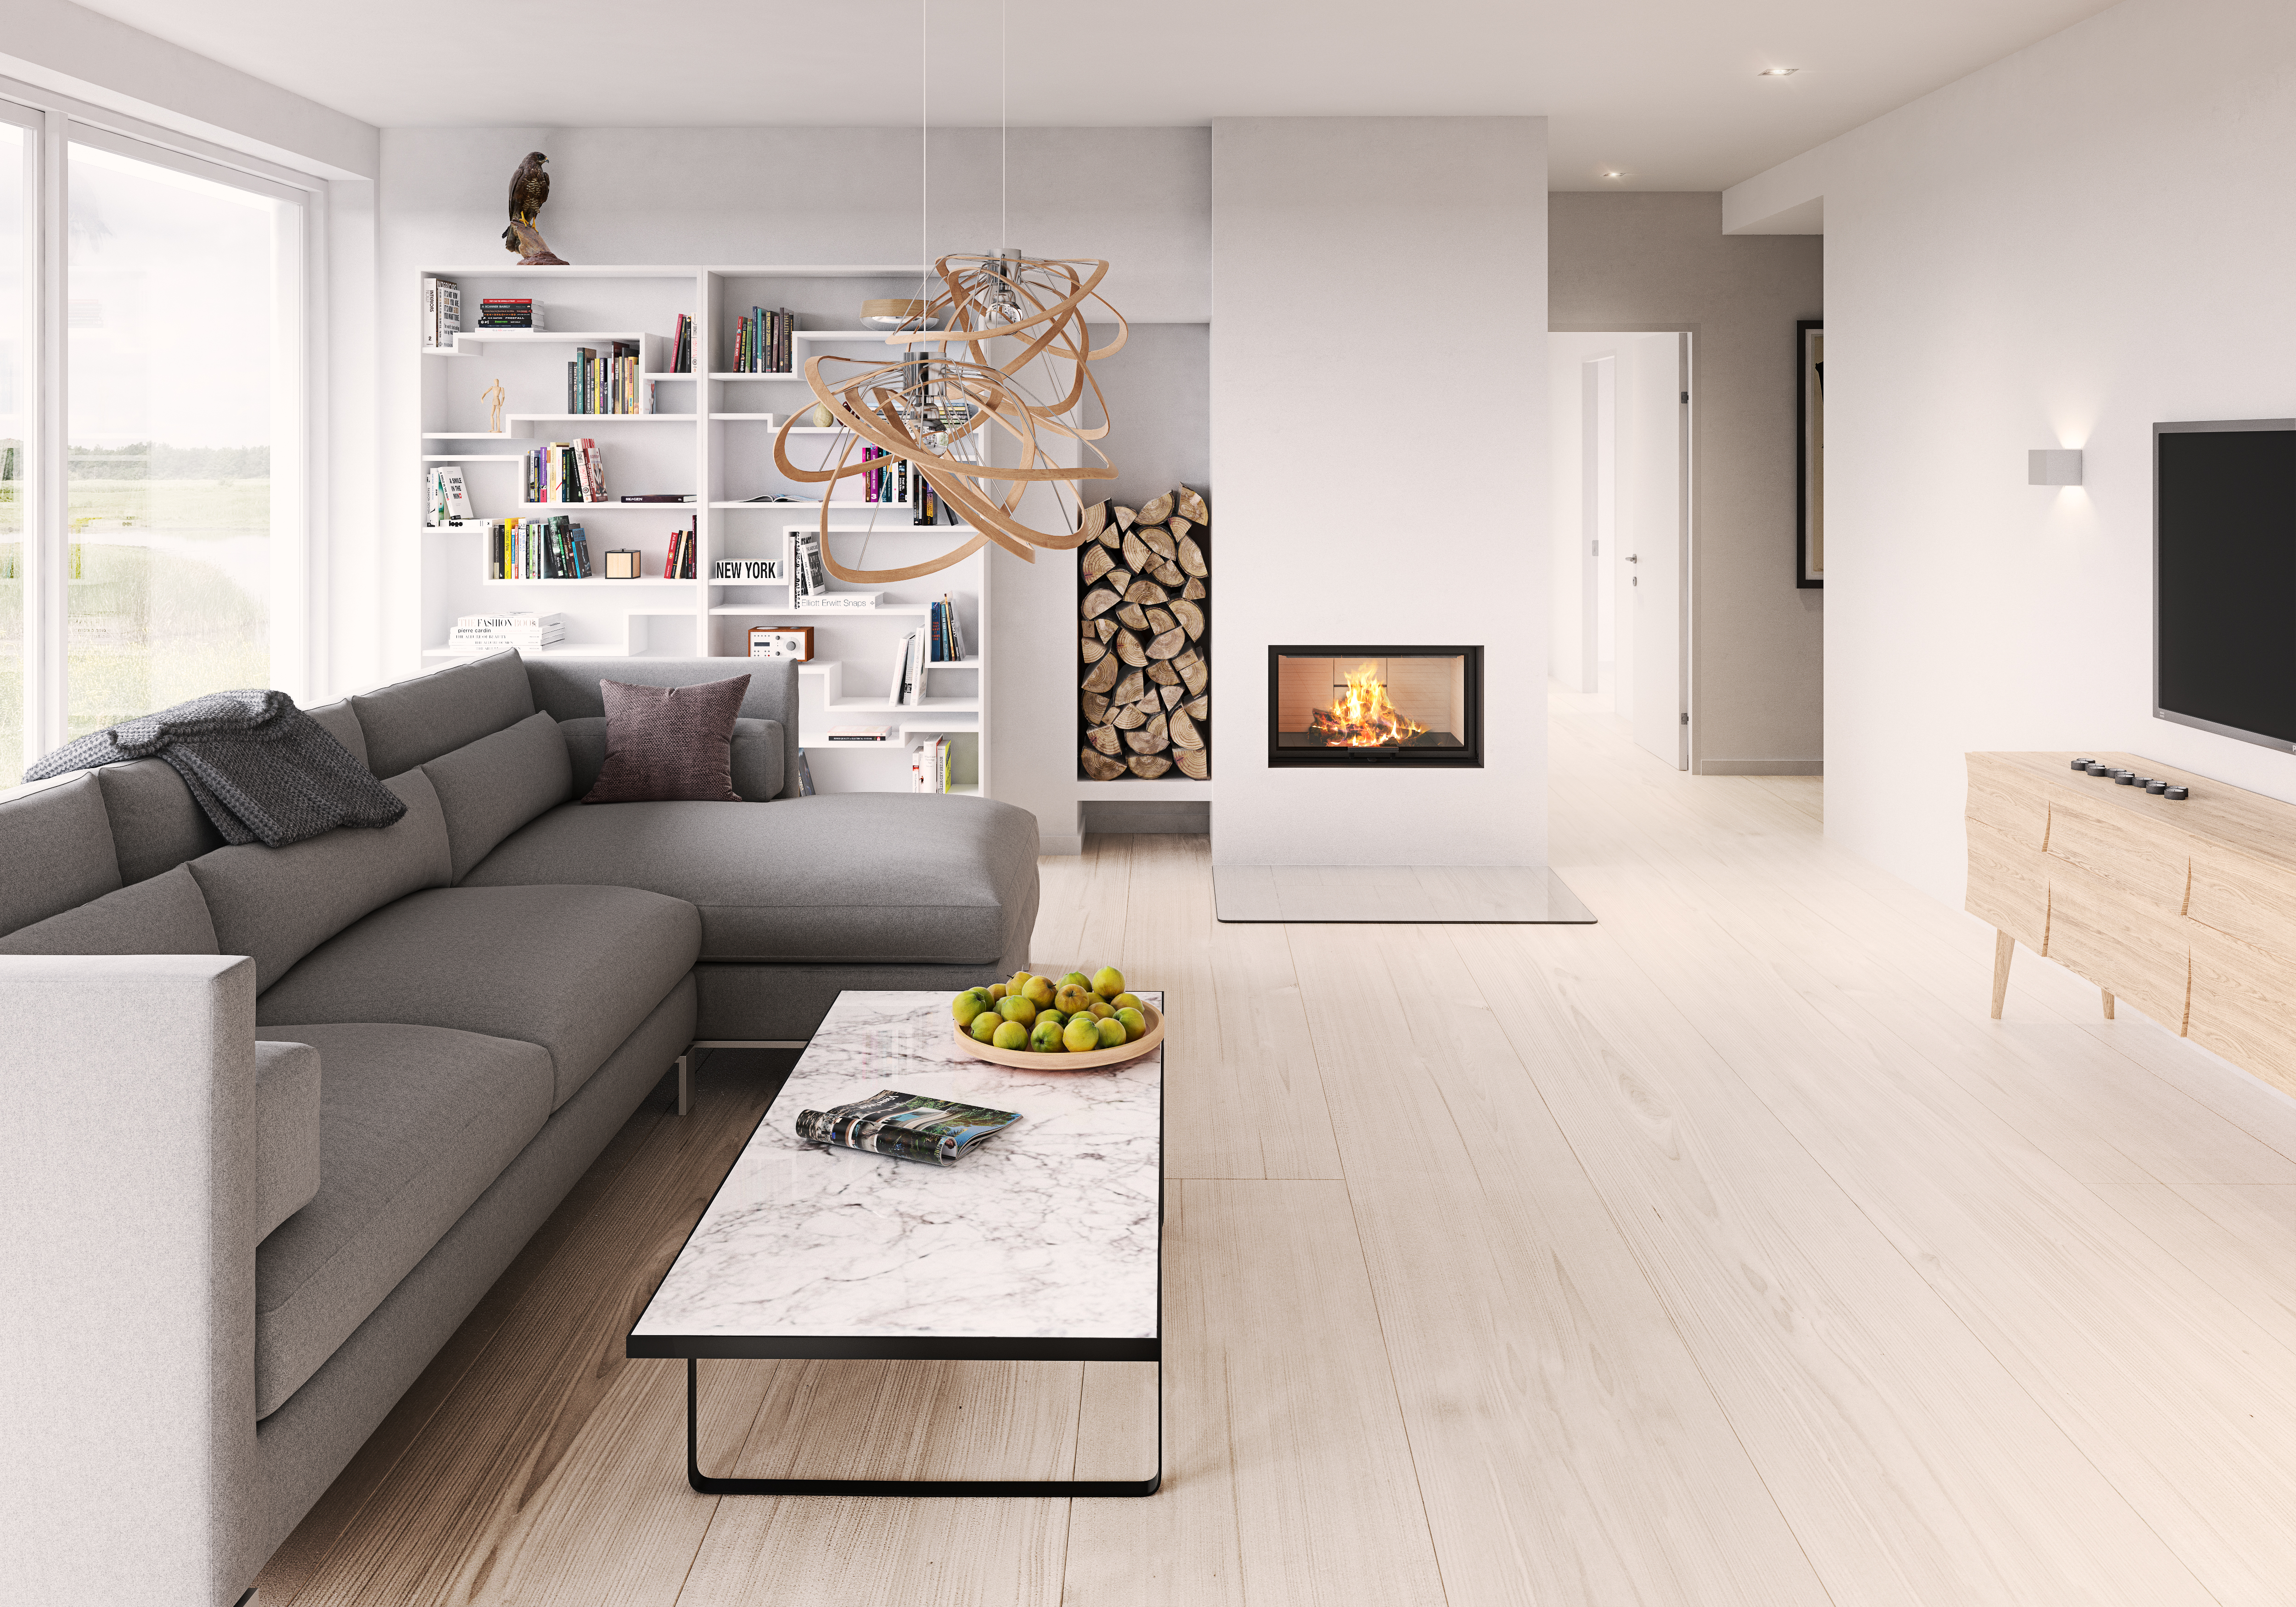 Contemporary-Modern-Glass-Fronted-Wood-Burning-Insert-Front-Facing-Fireplace